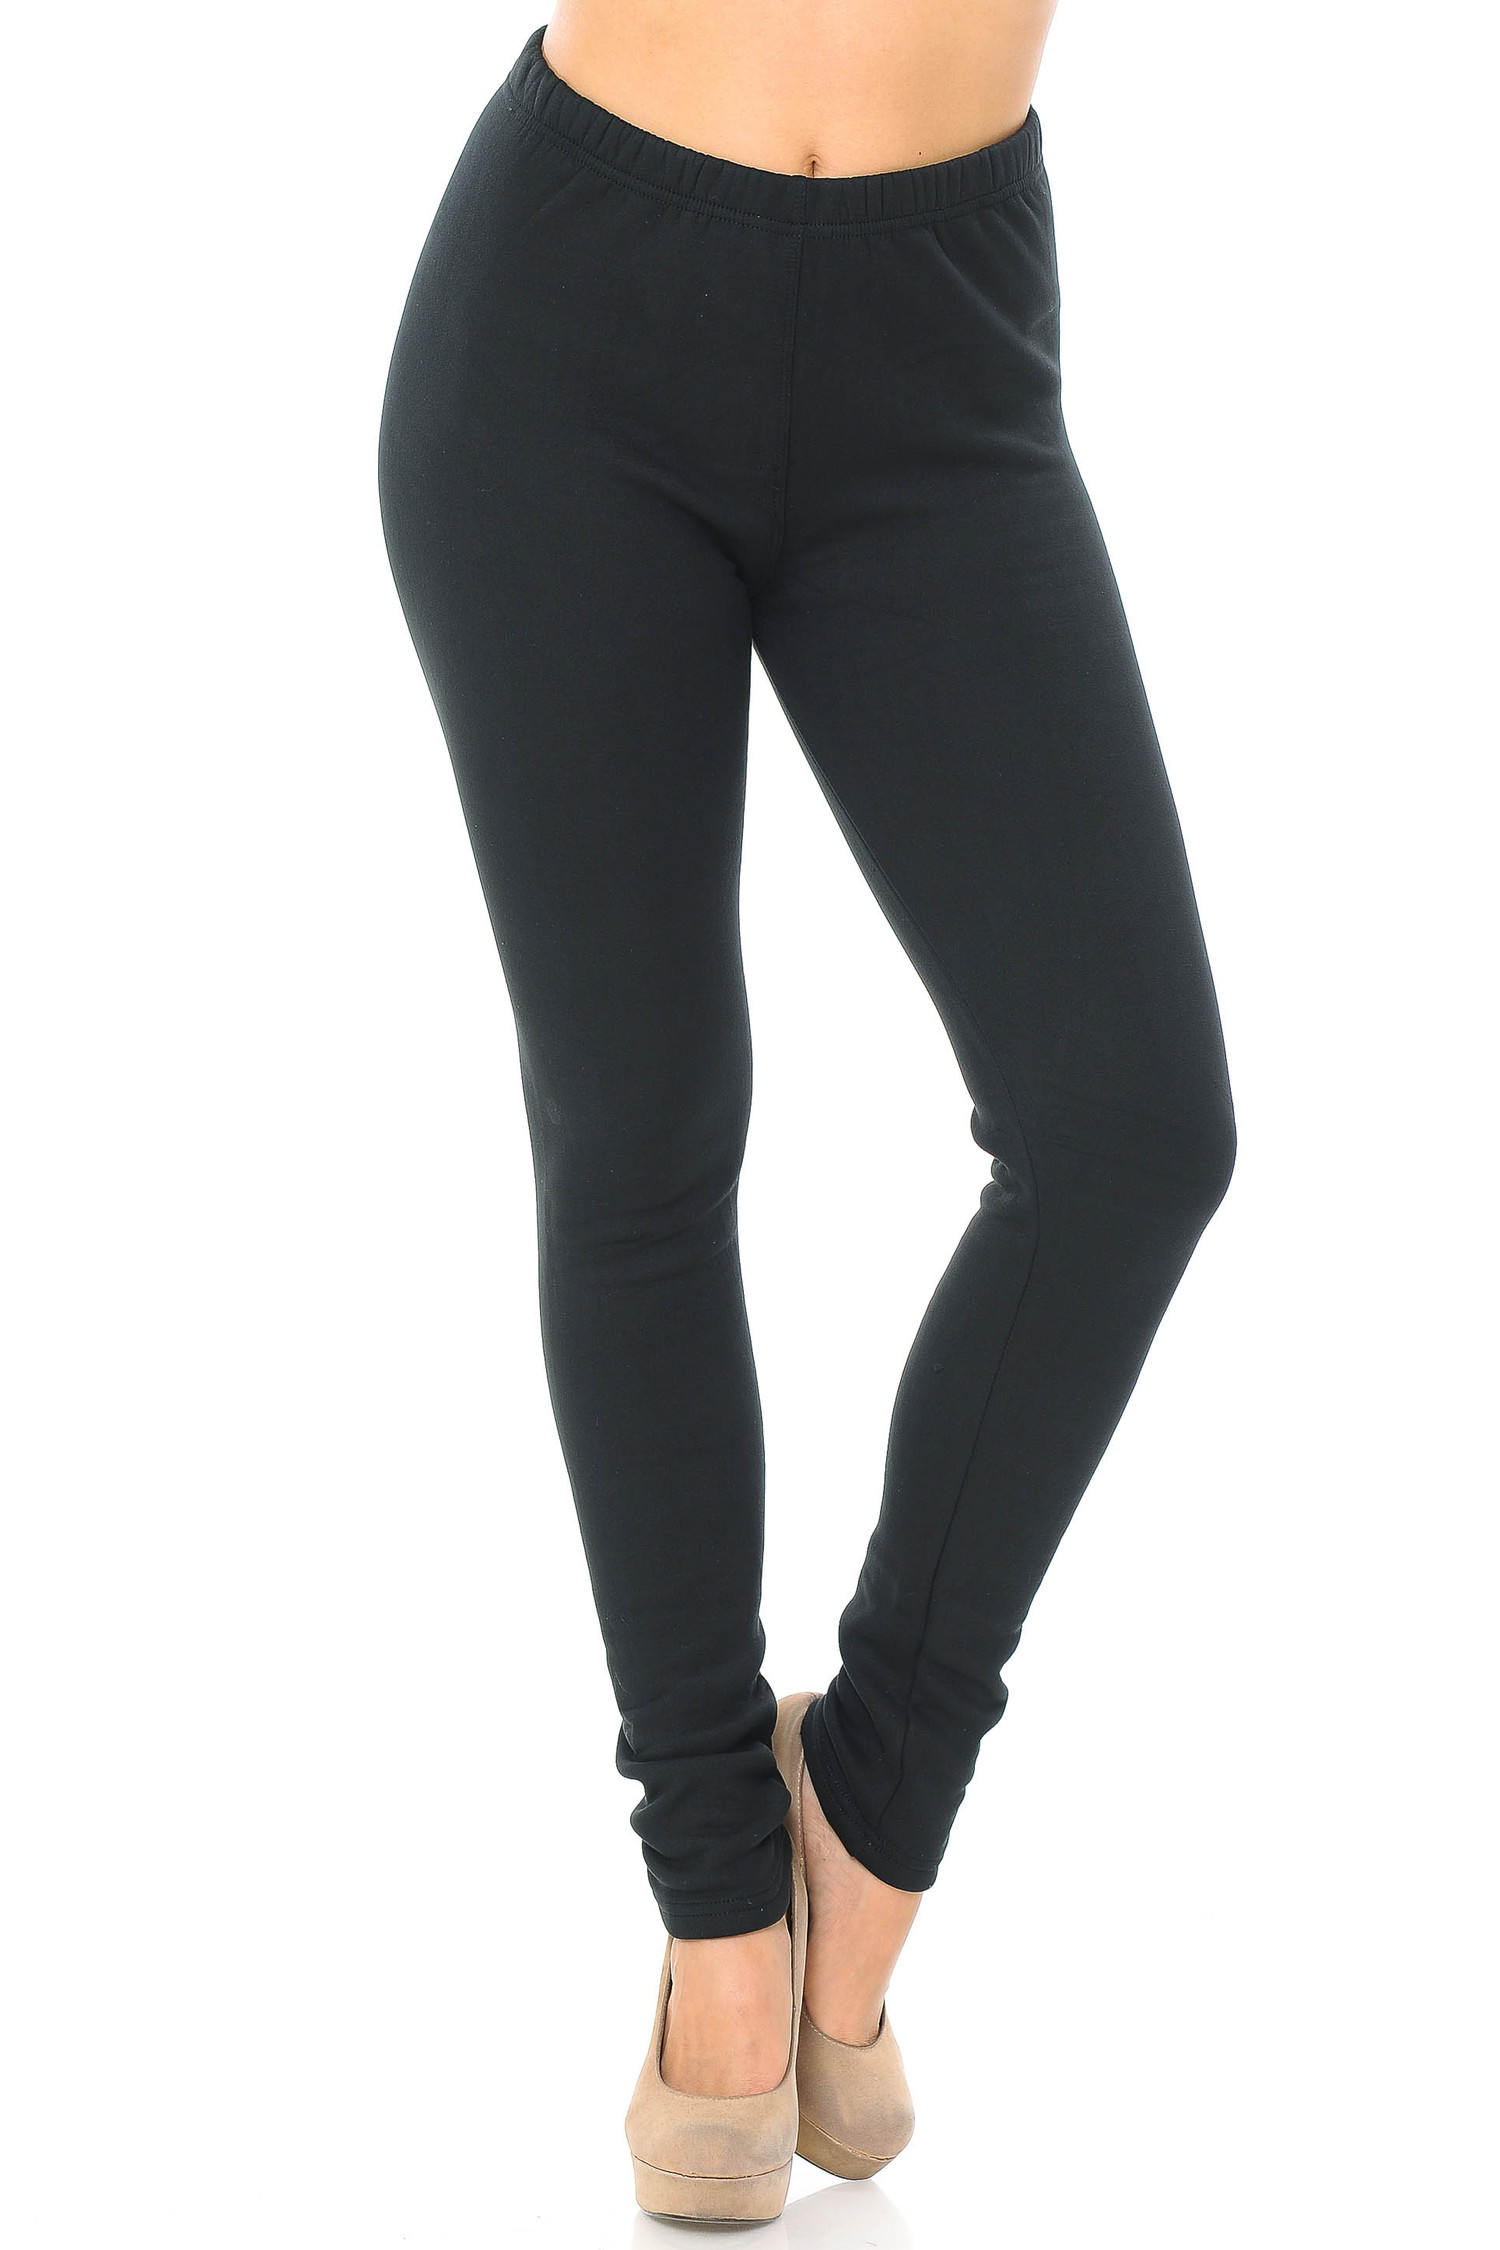 Front side bent knee view of Luxury Creamy Soft Fleece Lined Extra Plus Size Leggings - 3X-5X - USA Fashion™